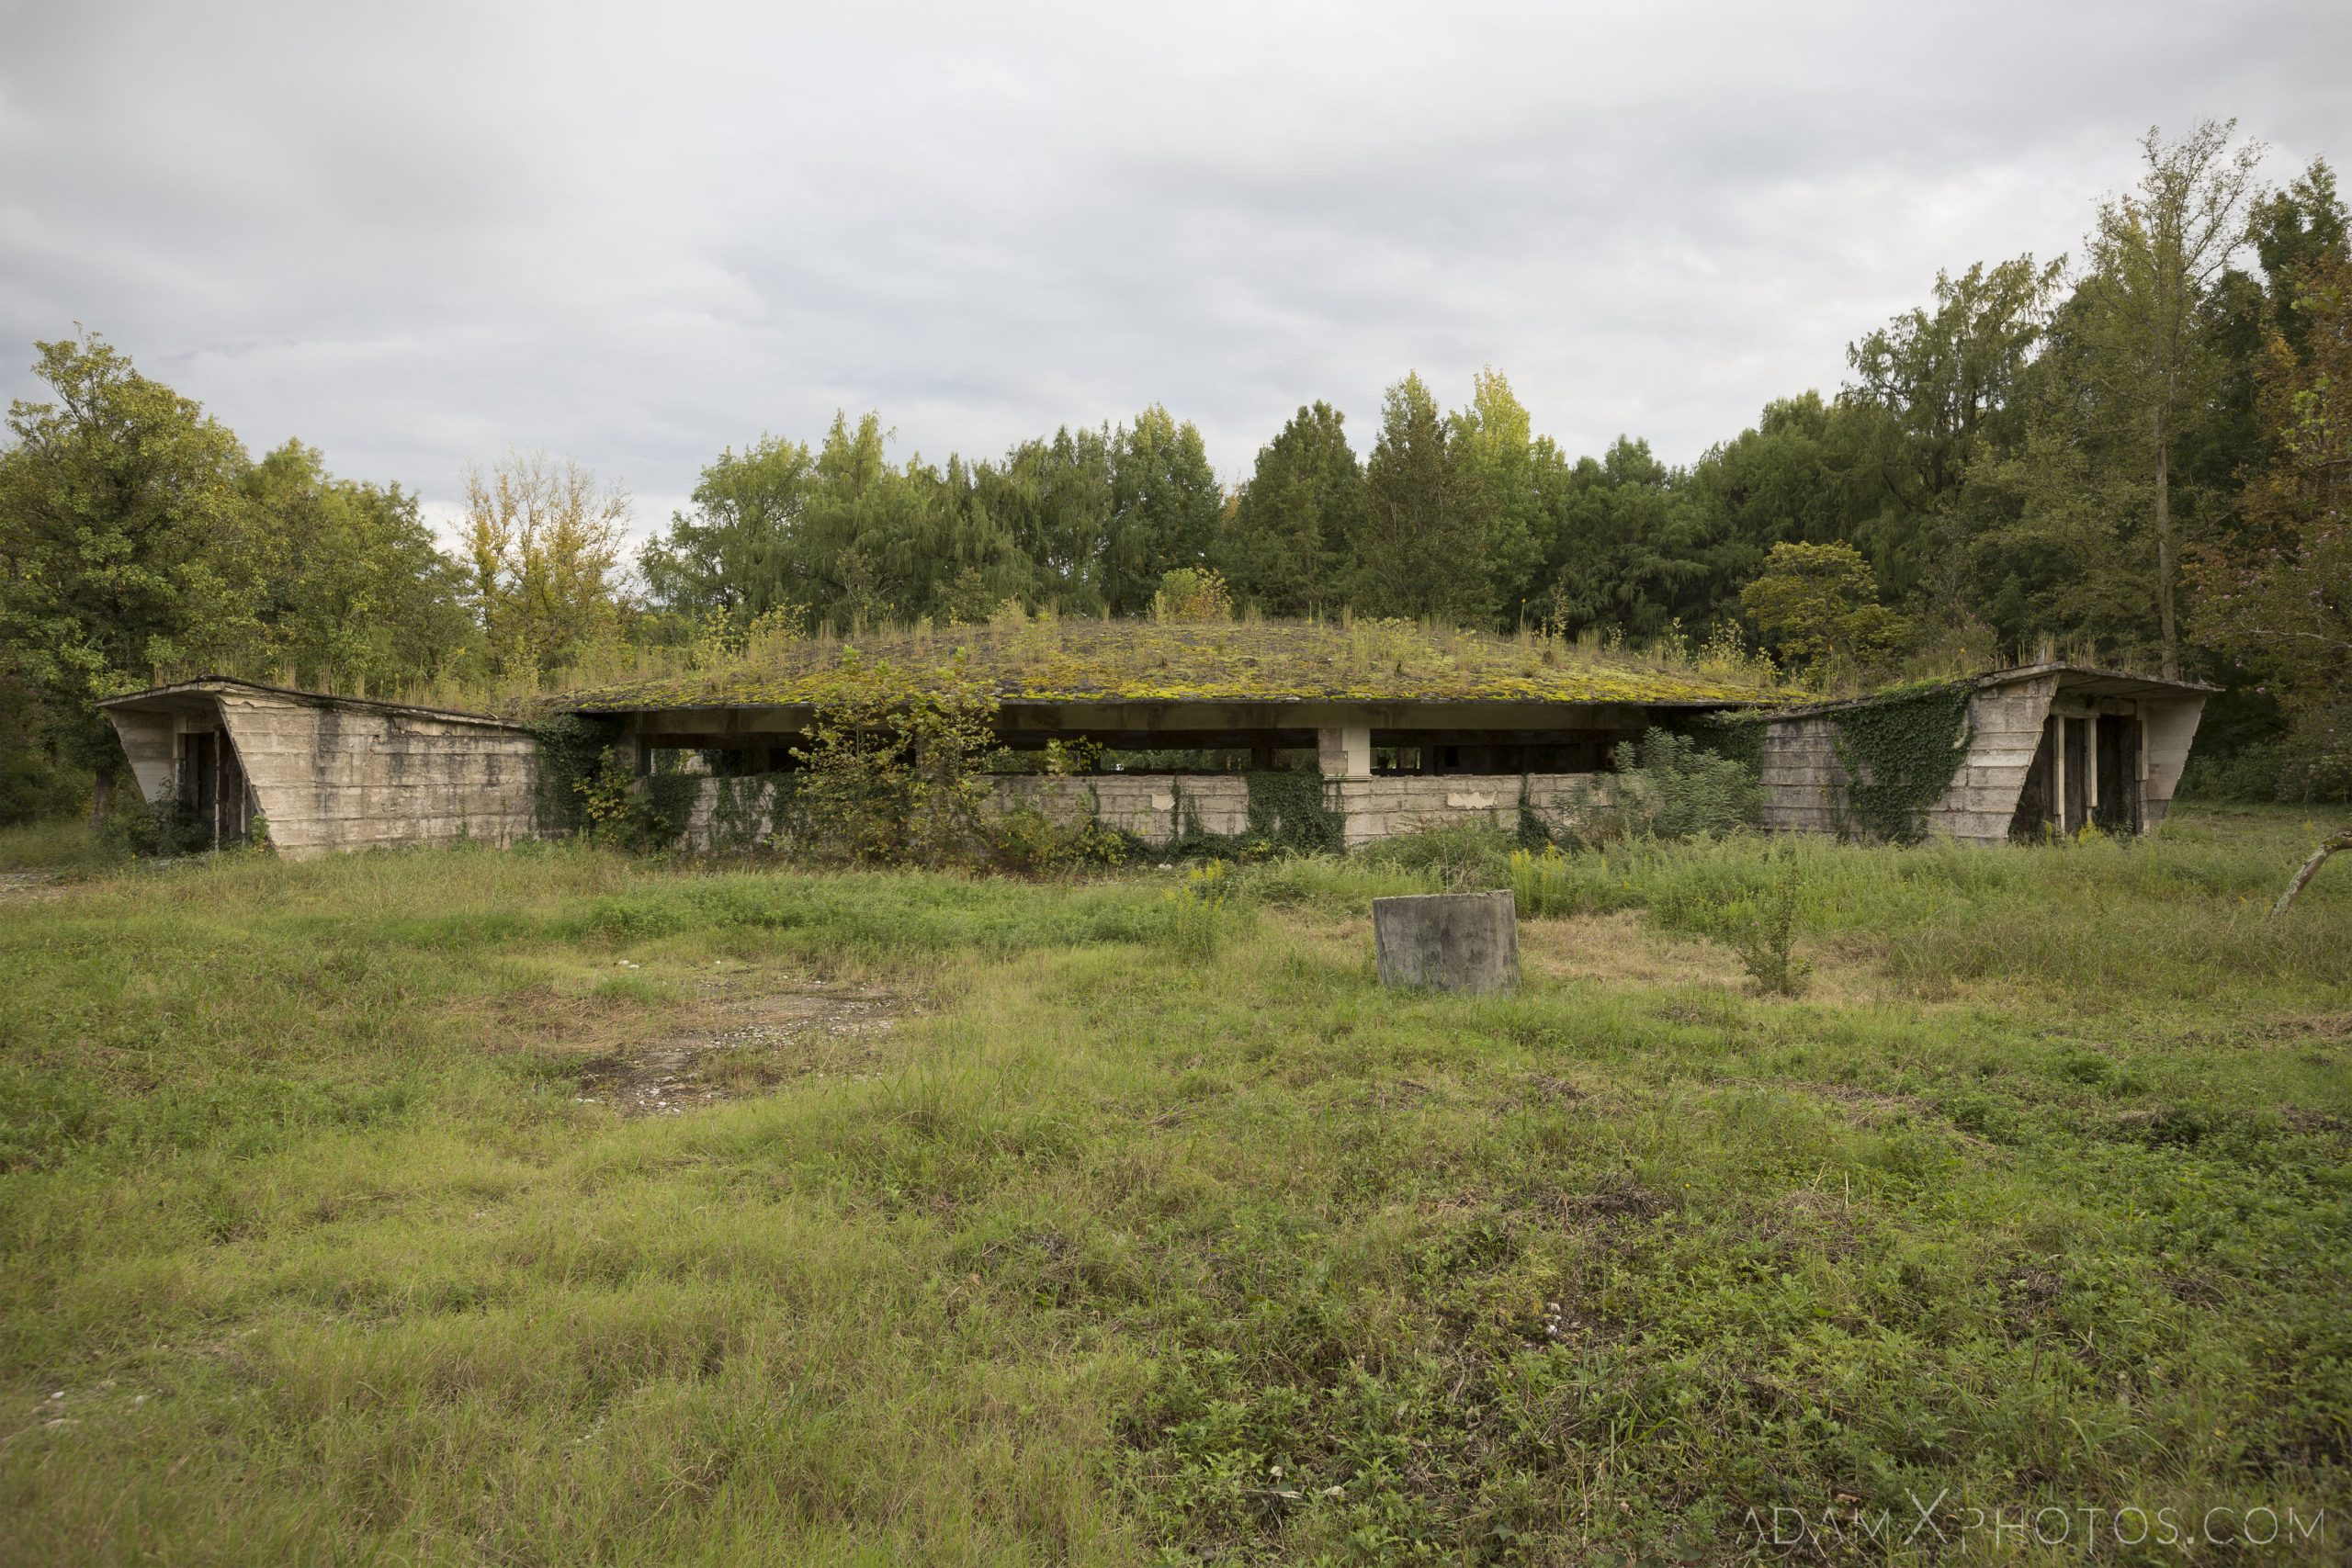 exterior outside overgrown Bath House Number 8 eight no. Tskaltubo Georgia Soviet era Adam X Urbex Urban Exploration 2018 Abandoned Access History decay ruins lost forgotten derelict location creepy haunting eerie security